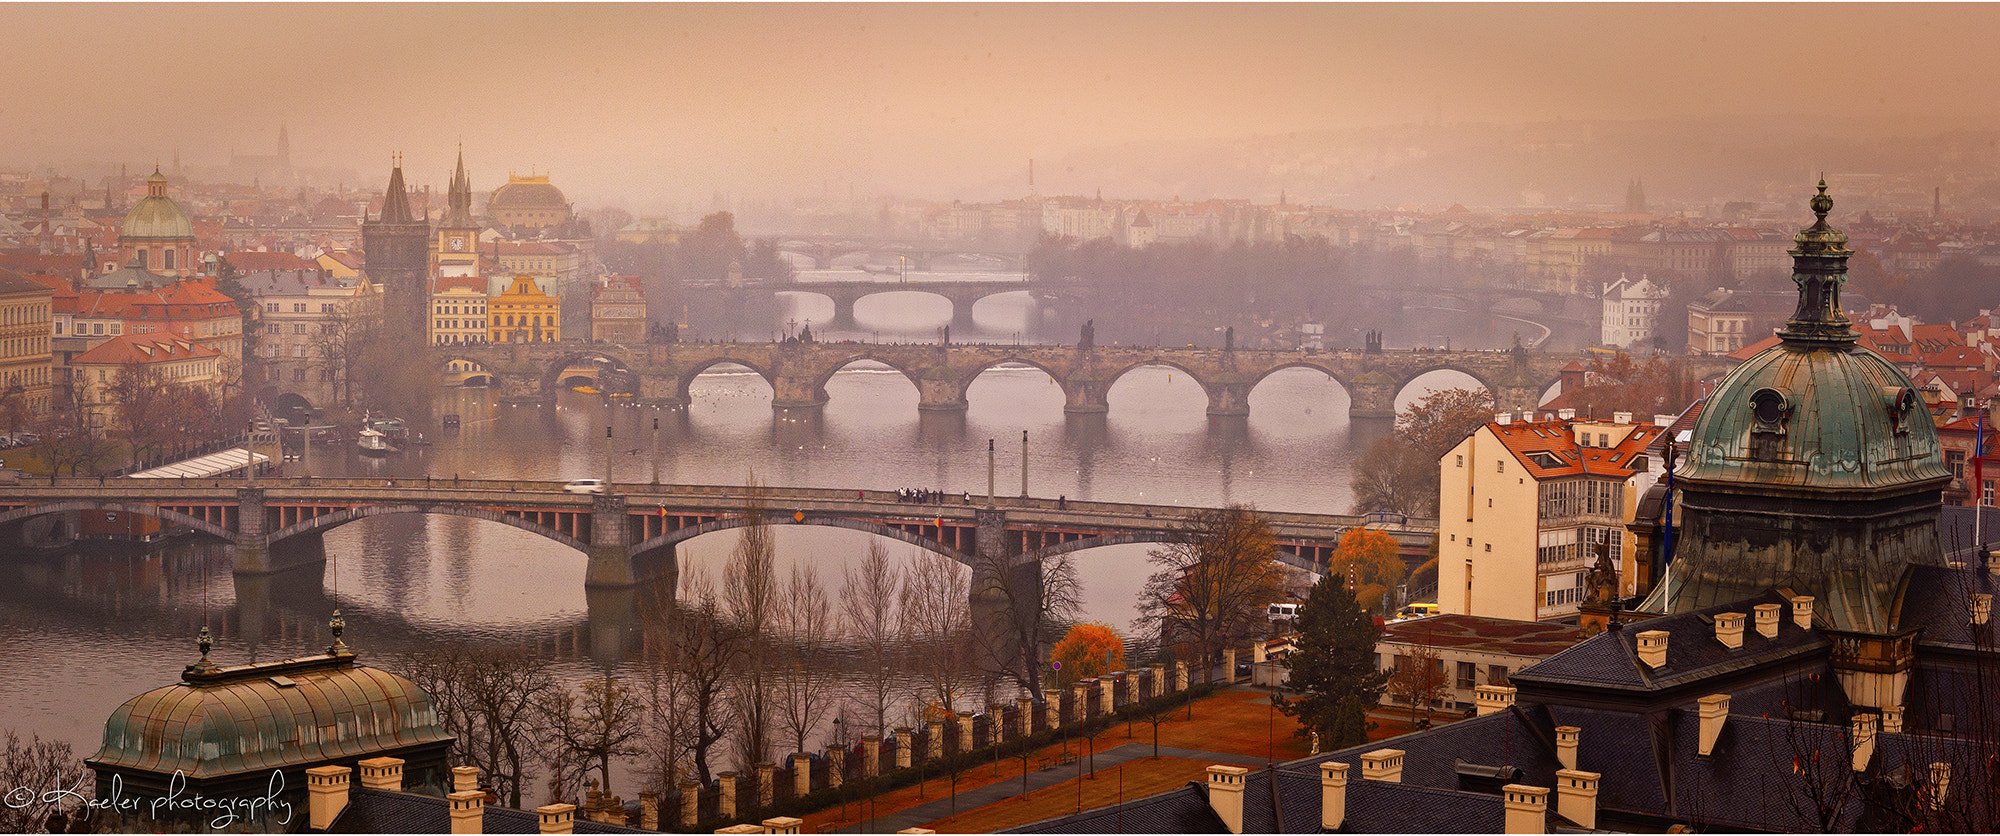 Photograph Bridges of Prague by Kate Eleanor Rassia on 500px